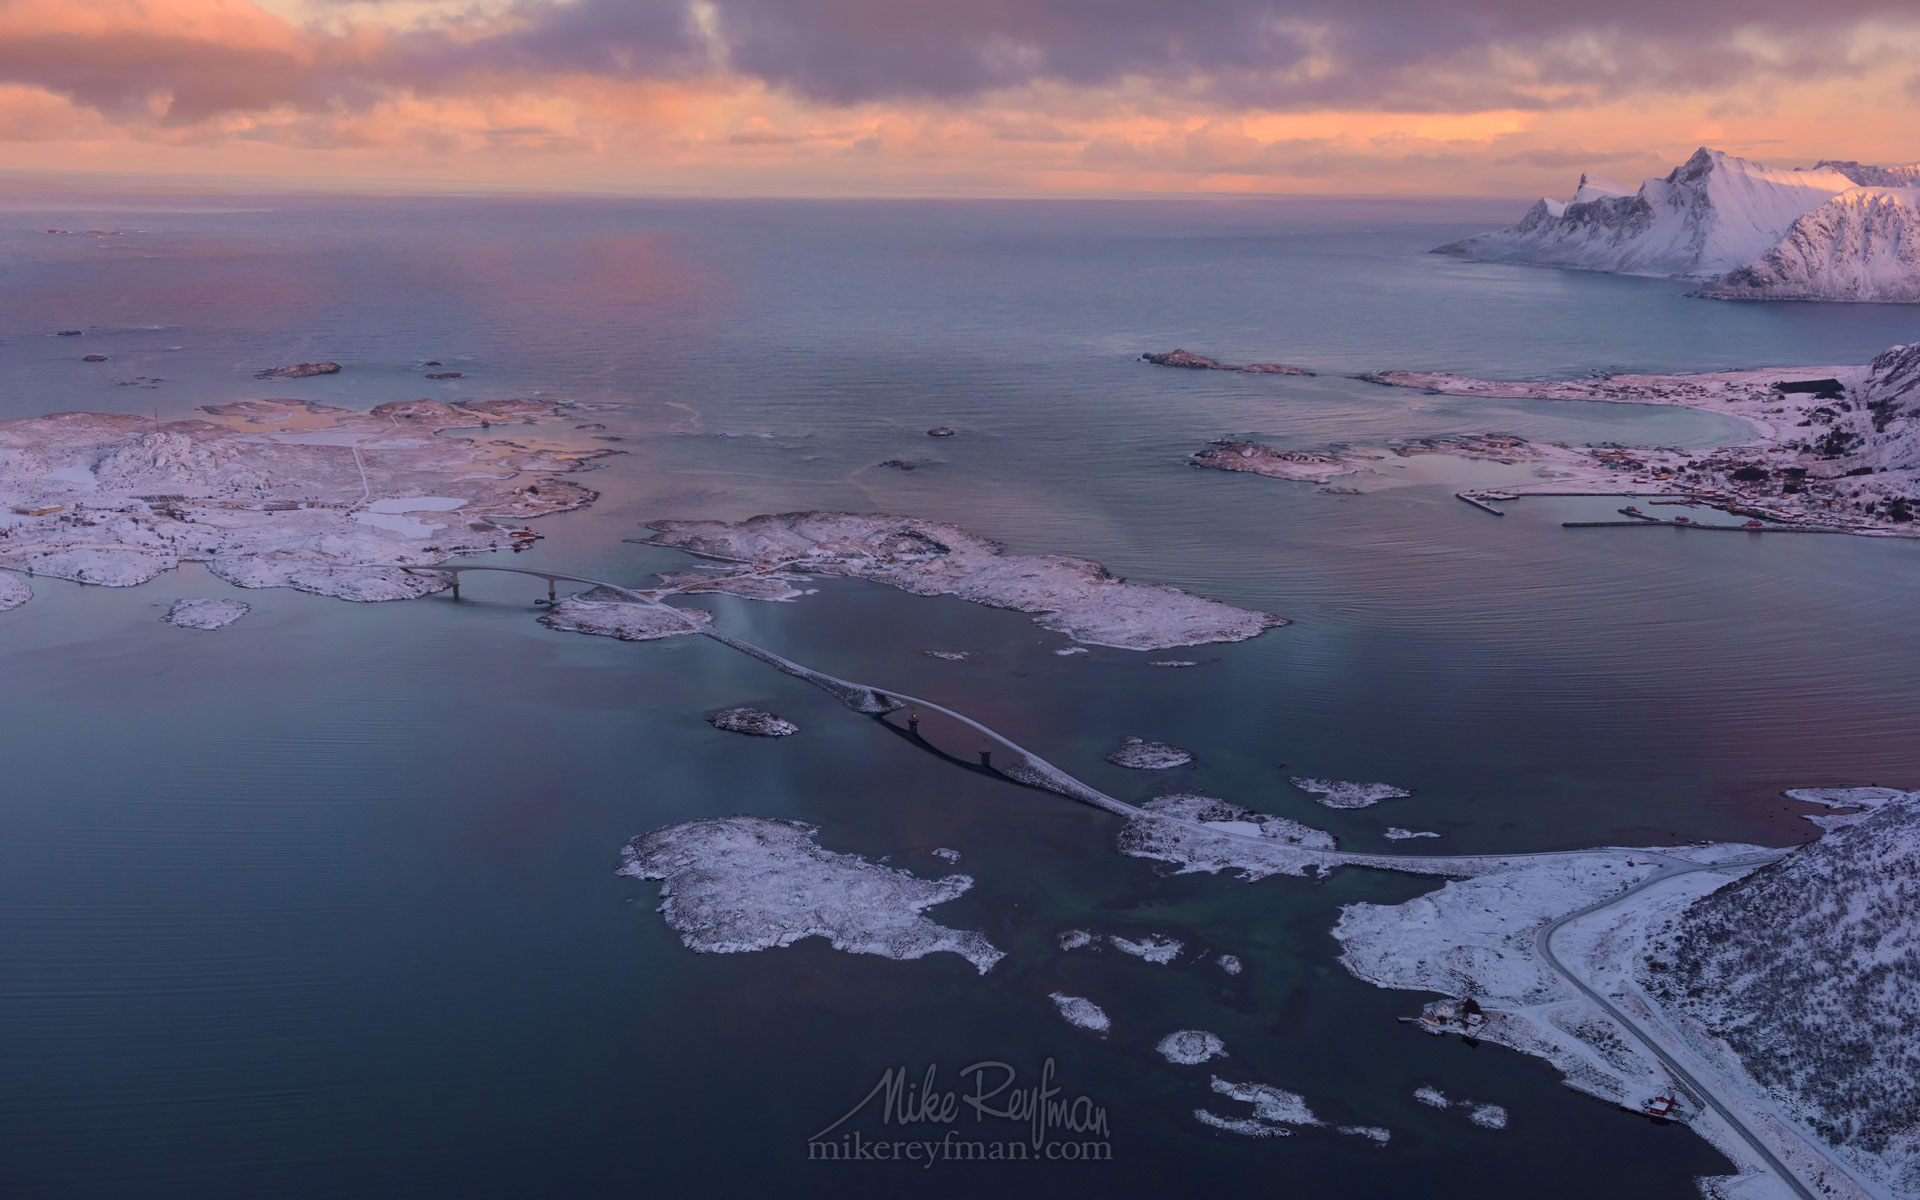 Fredvang Bridges. Aerial view of Lofoten archipelago at sunrise. Moskenes, Lofoten archipelago, Norway. LF-MRD1E1584 - Lofoten Archipelago in Winter, Arctic Norway - Mike Reyfman Photography